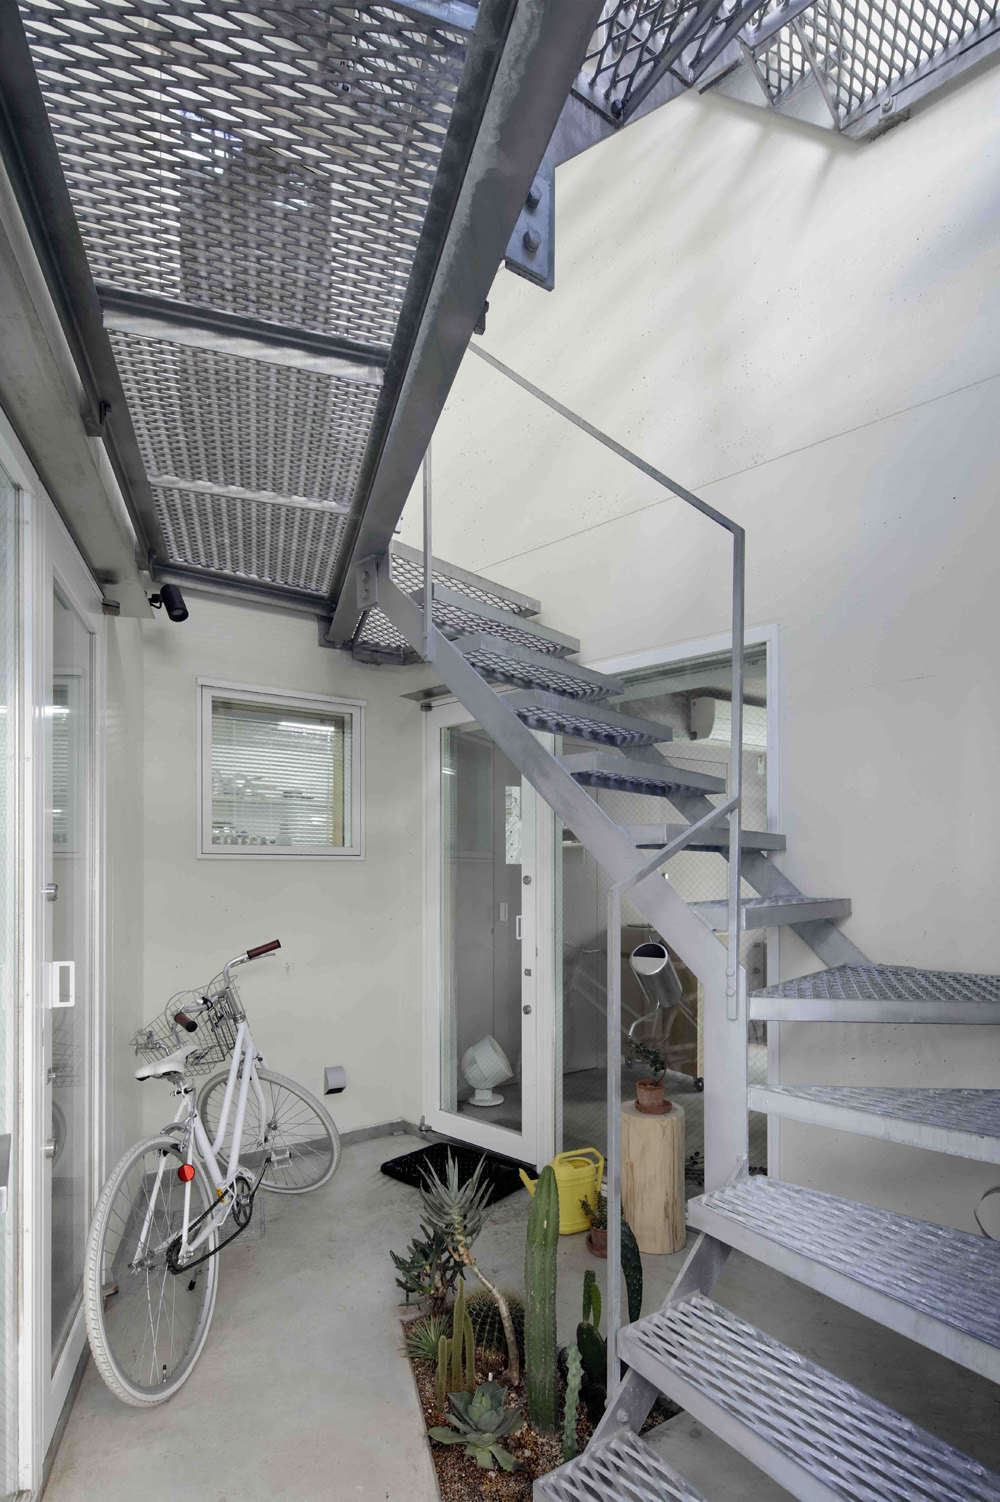 The entrance next to the garage opens to a pocket-size succulent garden next to the steel mesh stair.The ground floor houses a commercial kitchen and showroom for Cineca, Mio&#8